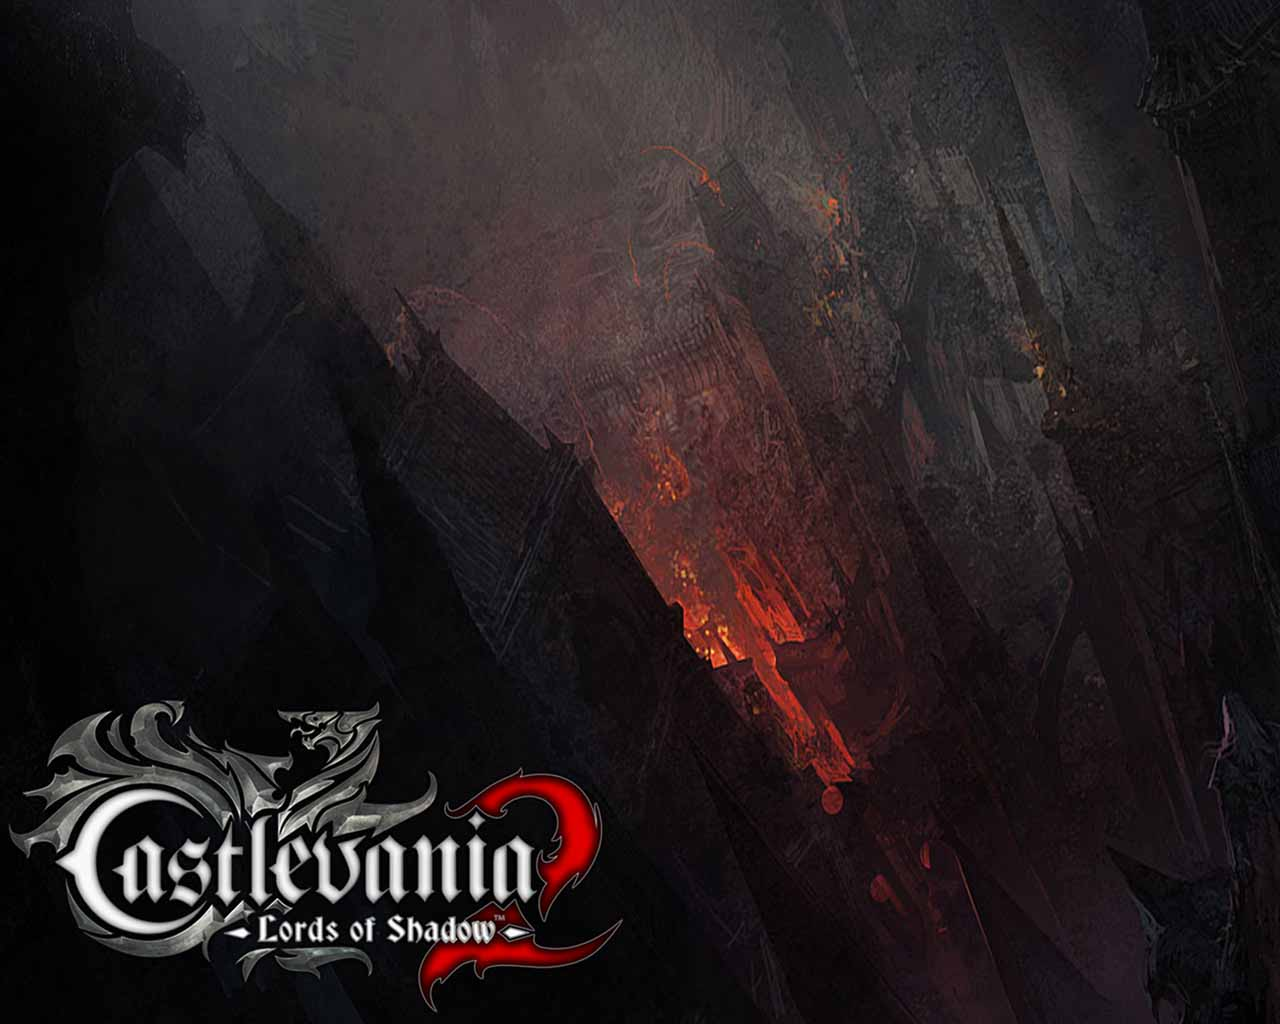 Hq Wallpapers Castlevania Wallpapers